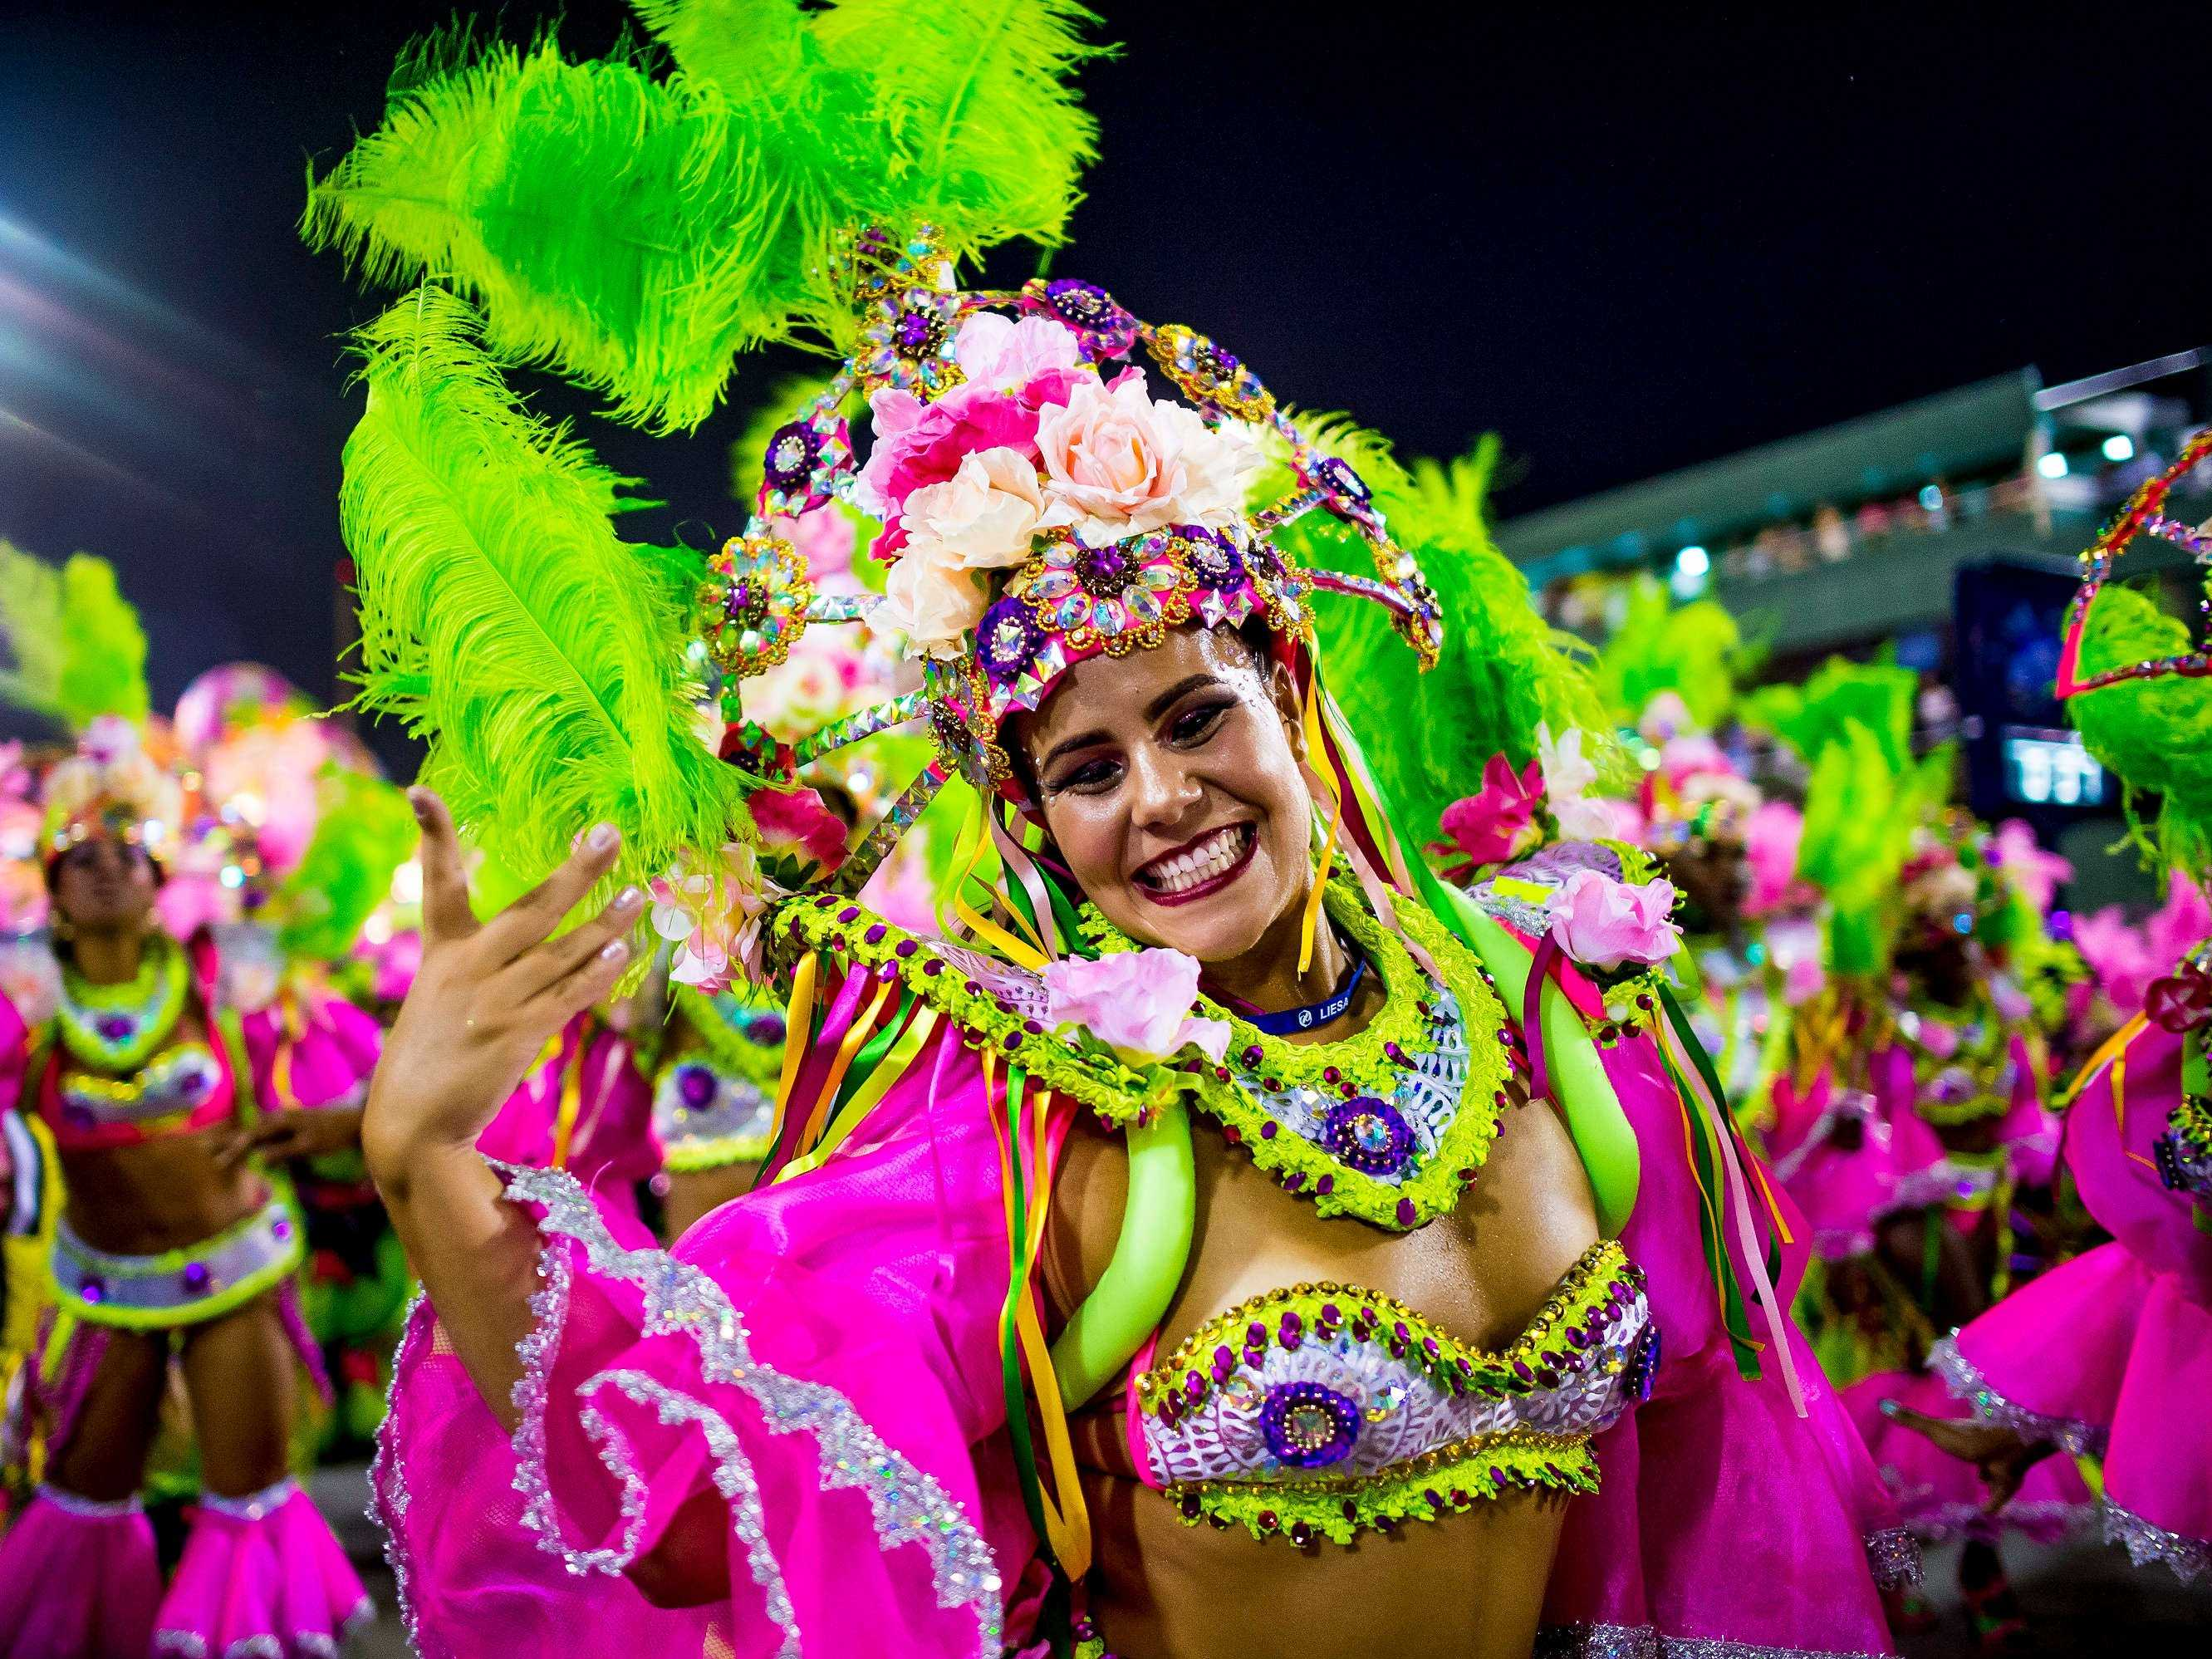 Party at the world's biggest Carnival celebration in Rio de Janeiro, Brazil.